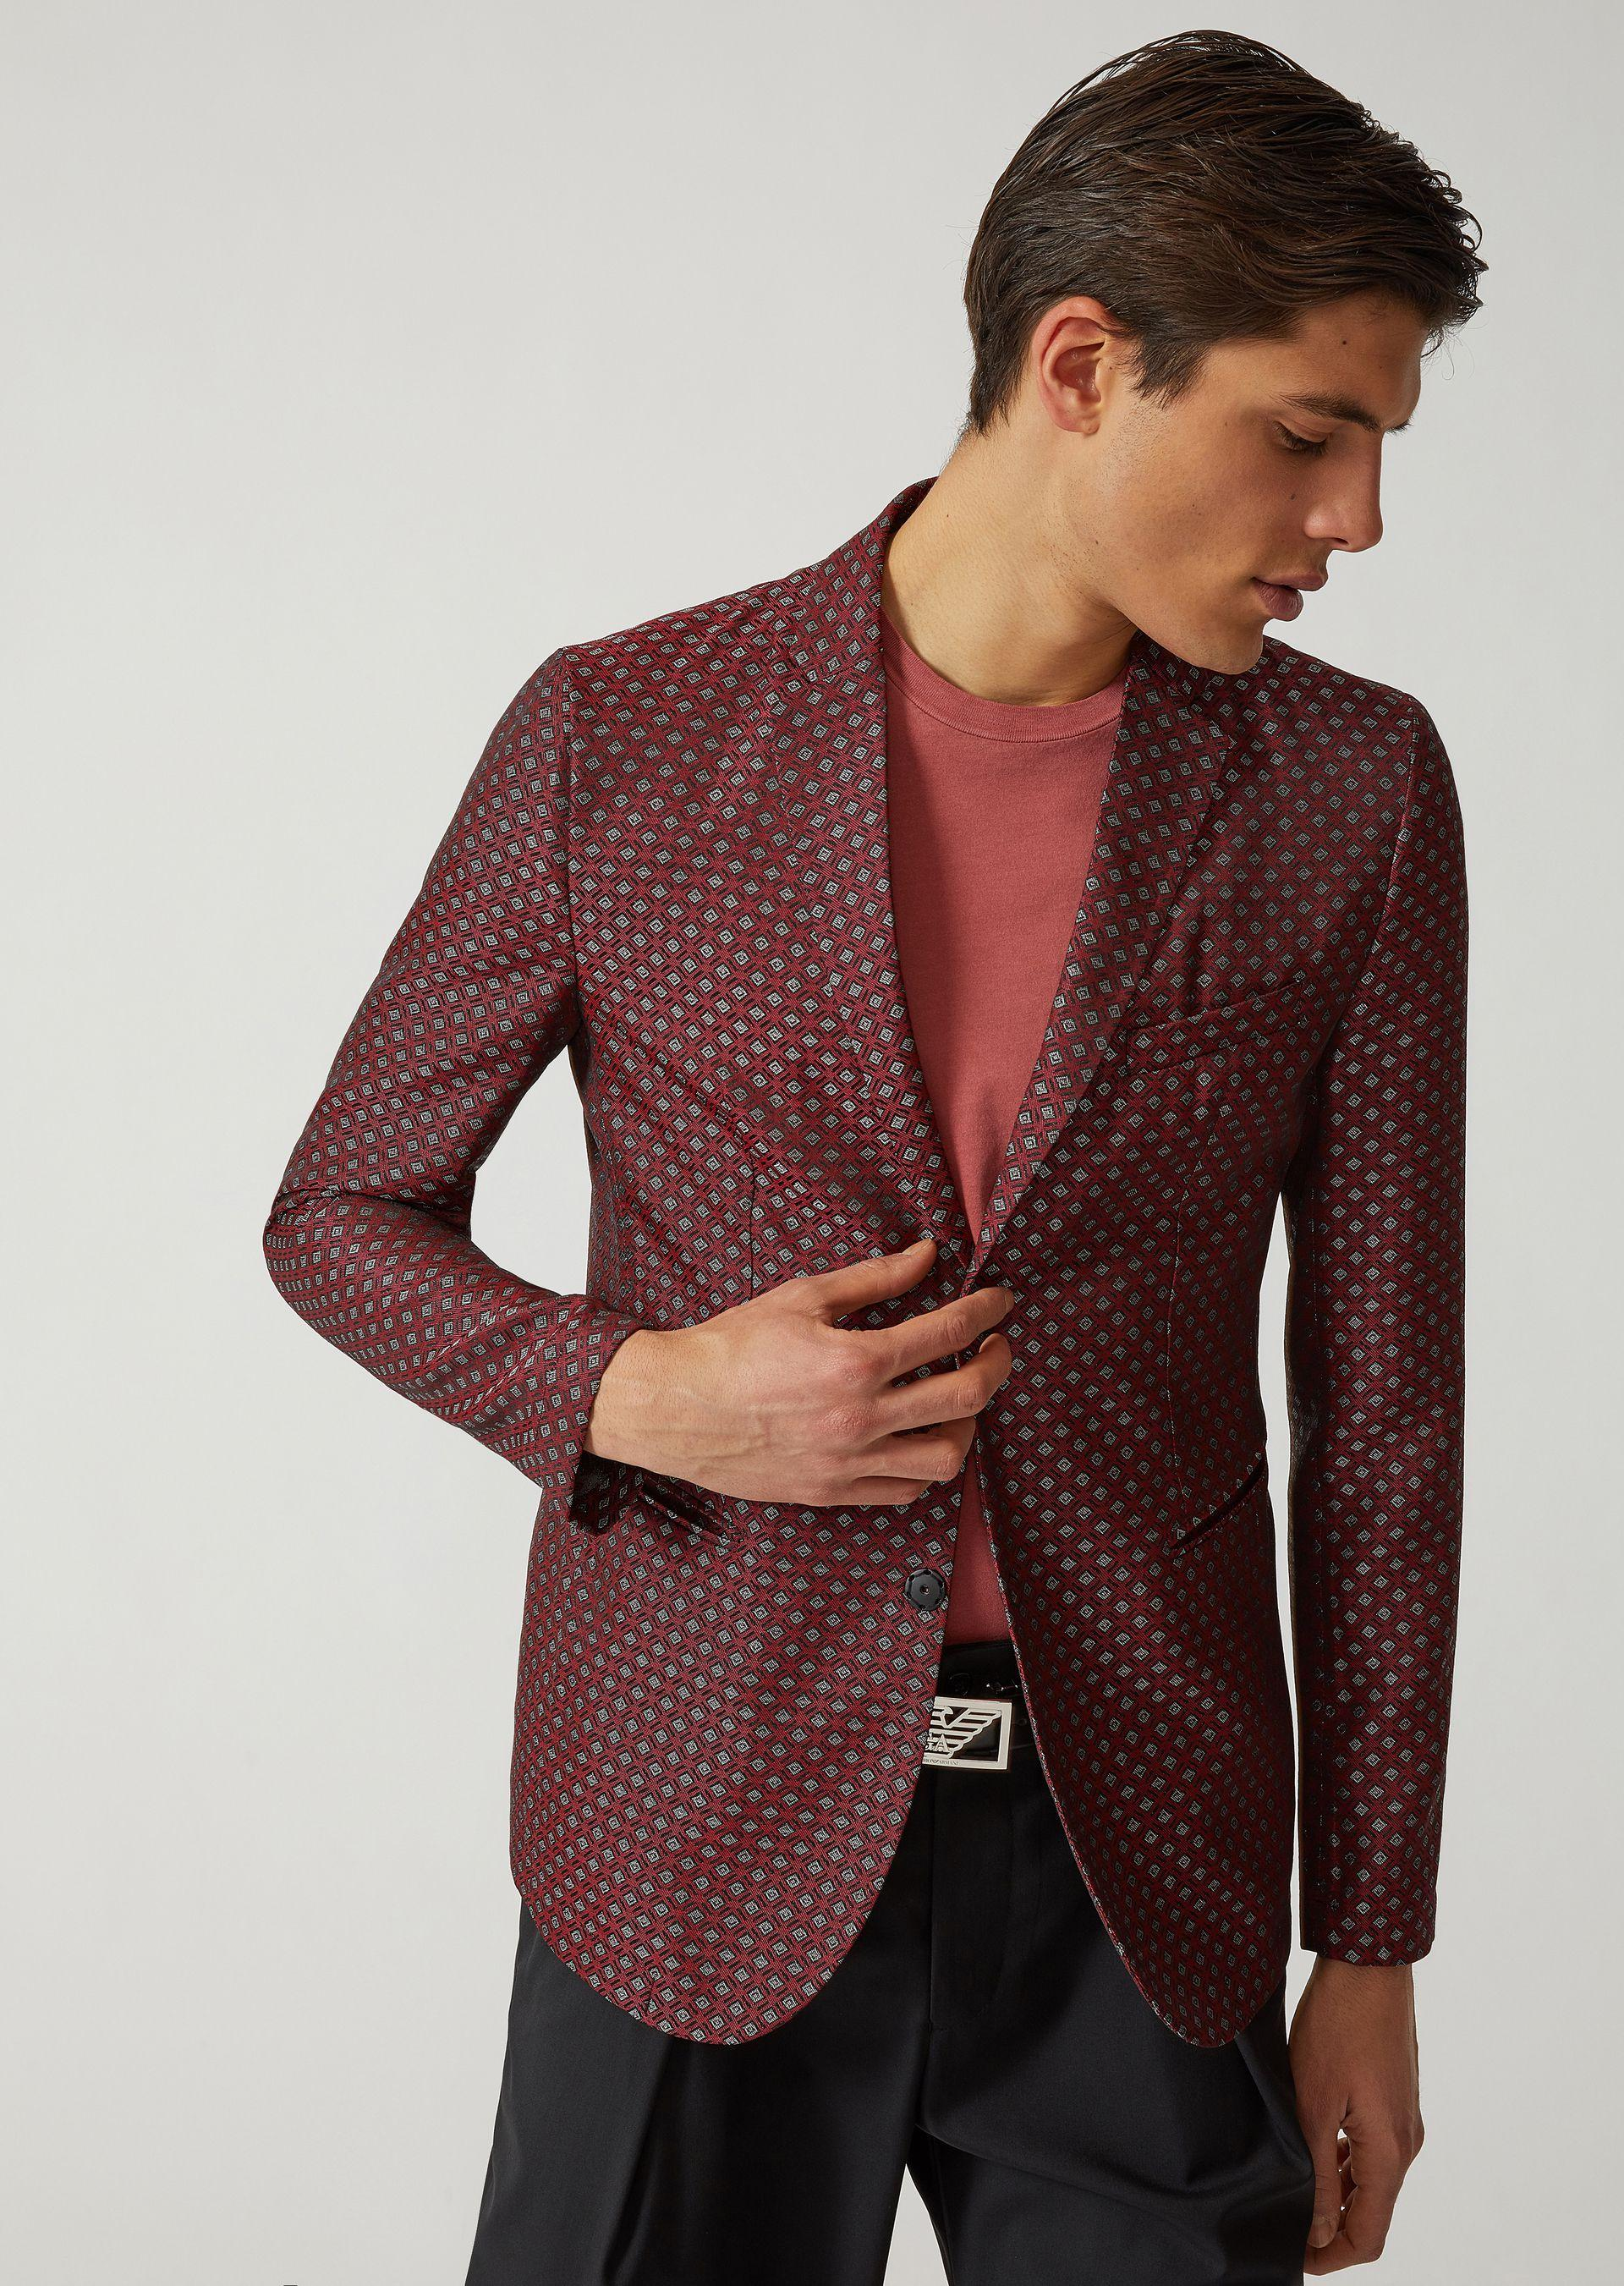 Emporio Armani Casual Jackets - Item 41793019 In Pattern